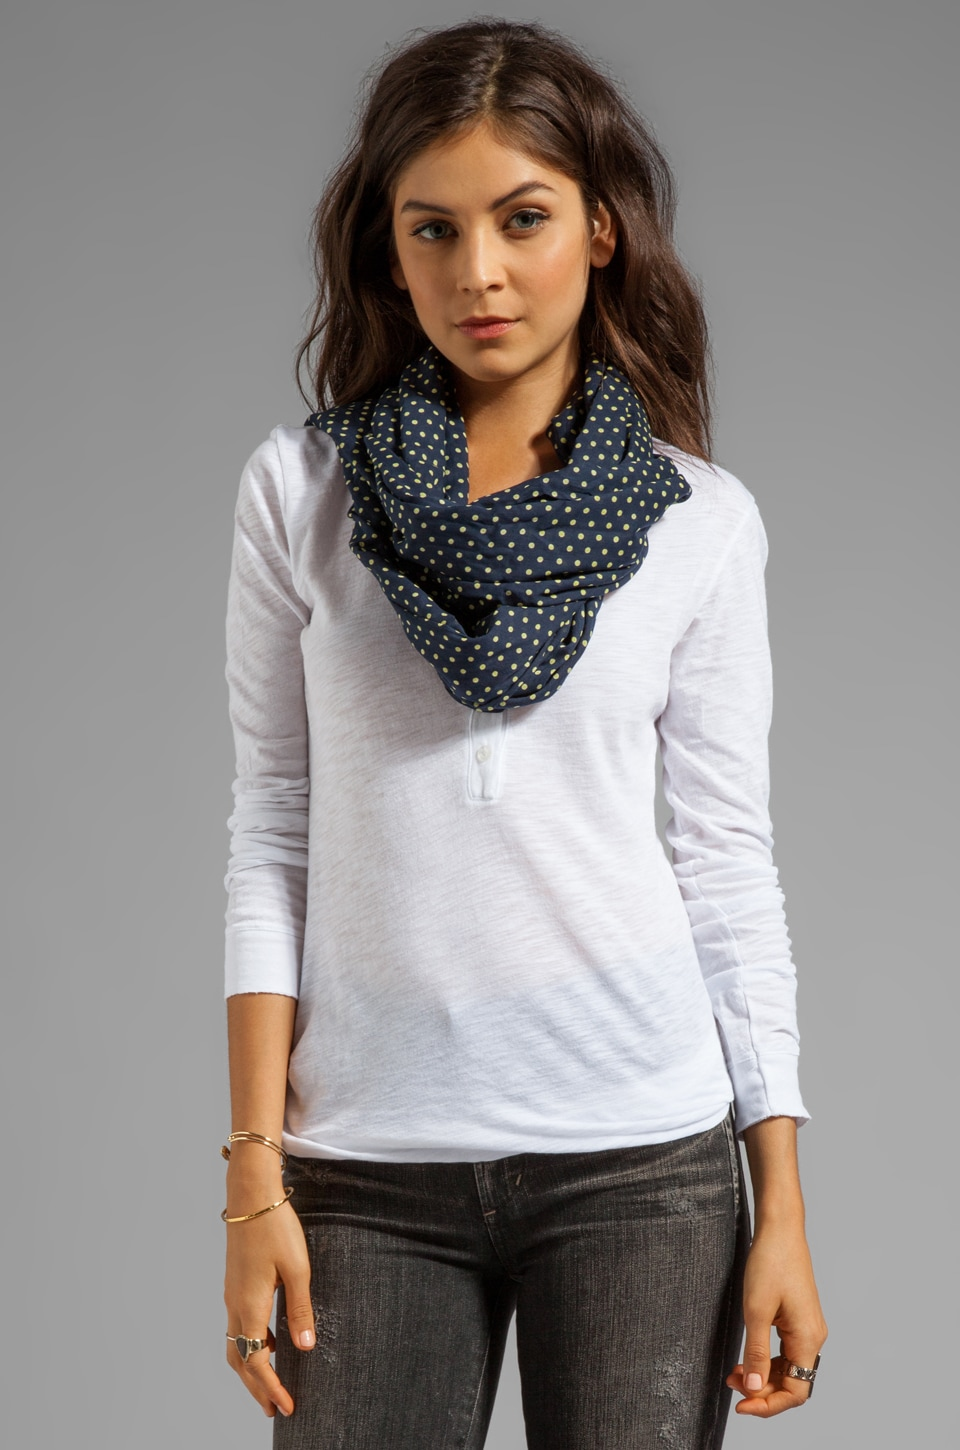 gorjana Hampton Scarf in Navy